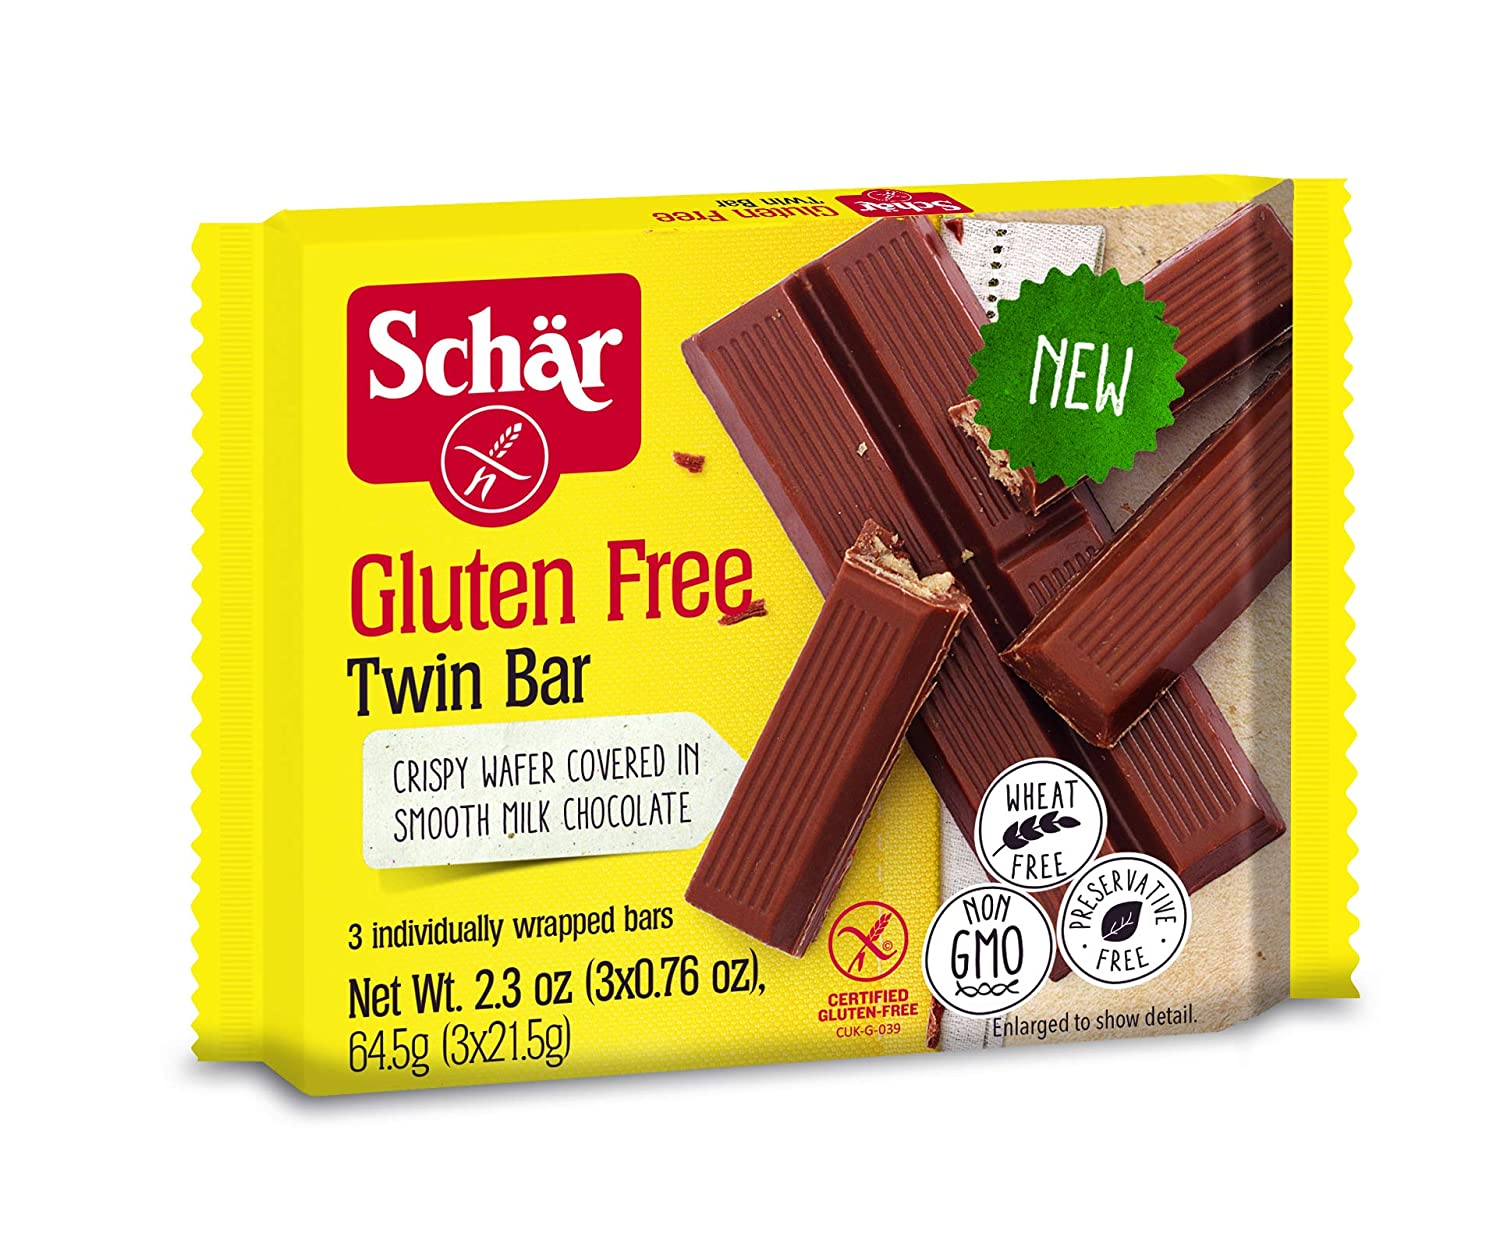 Schar Twin Bar: Amazon.com: Grocery & Gourmet Food